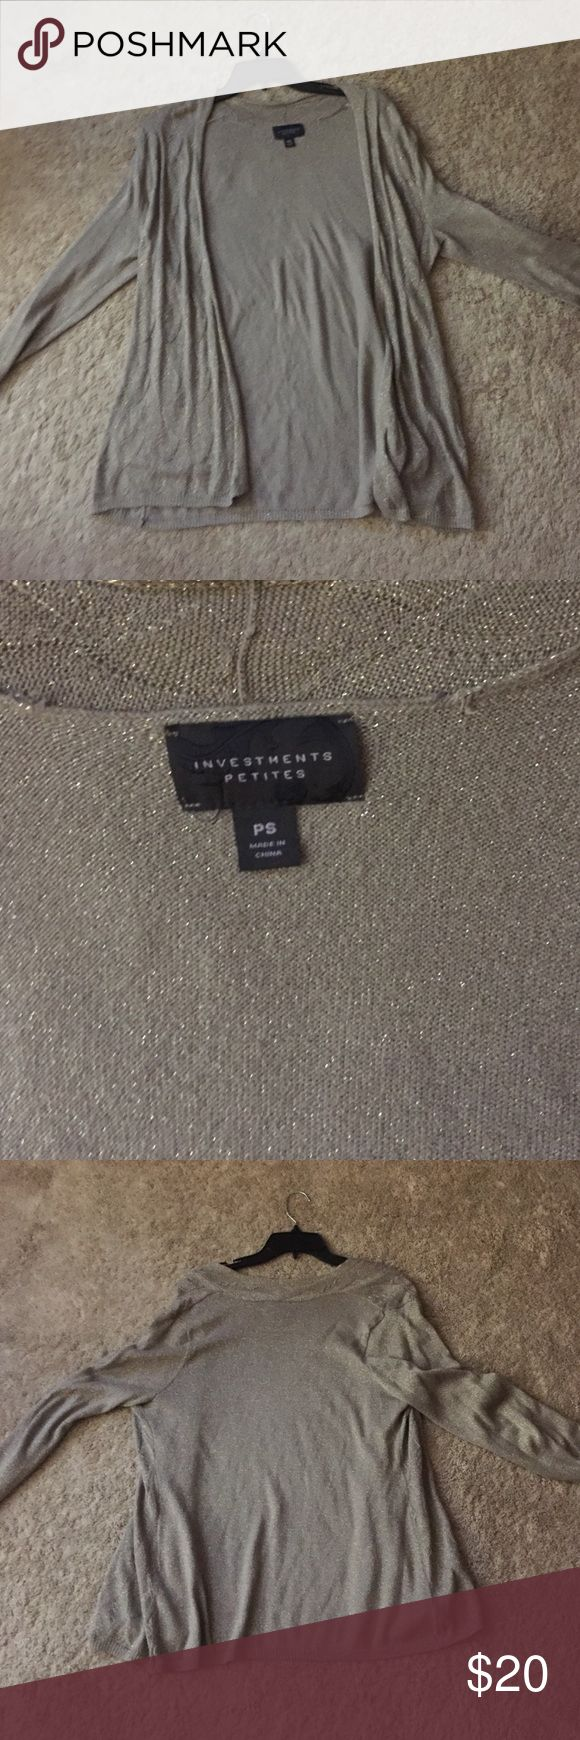 An Investments Petite Sparkly Gold Cardigan It is an investments sparkly gold cardigan. It is a petite size small and it was purchased from Dillard's. It has been worn a handful of times but it still remains like brand new. Investments Other